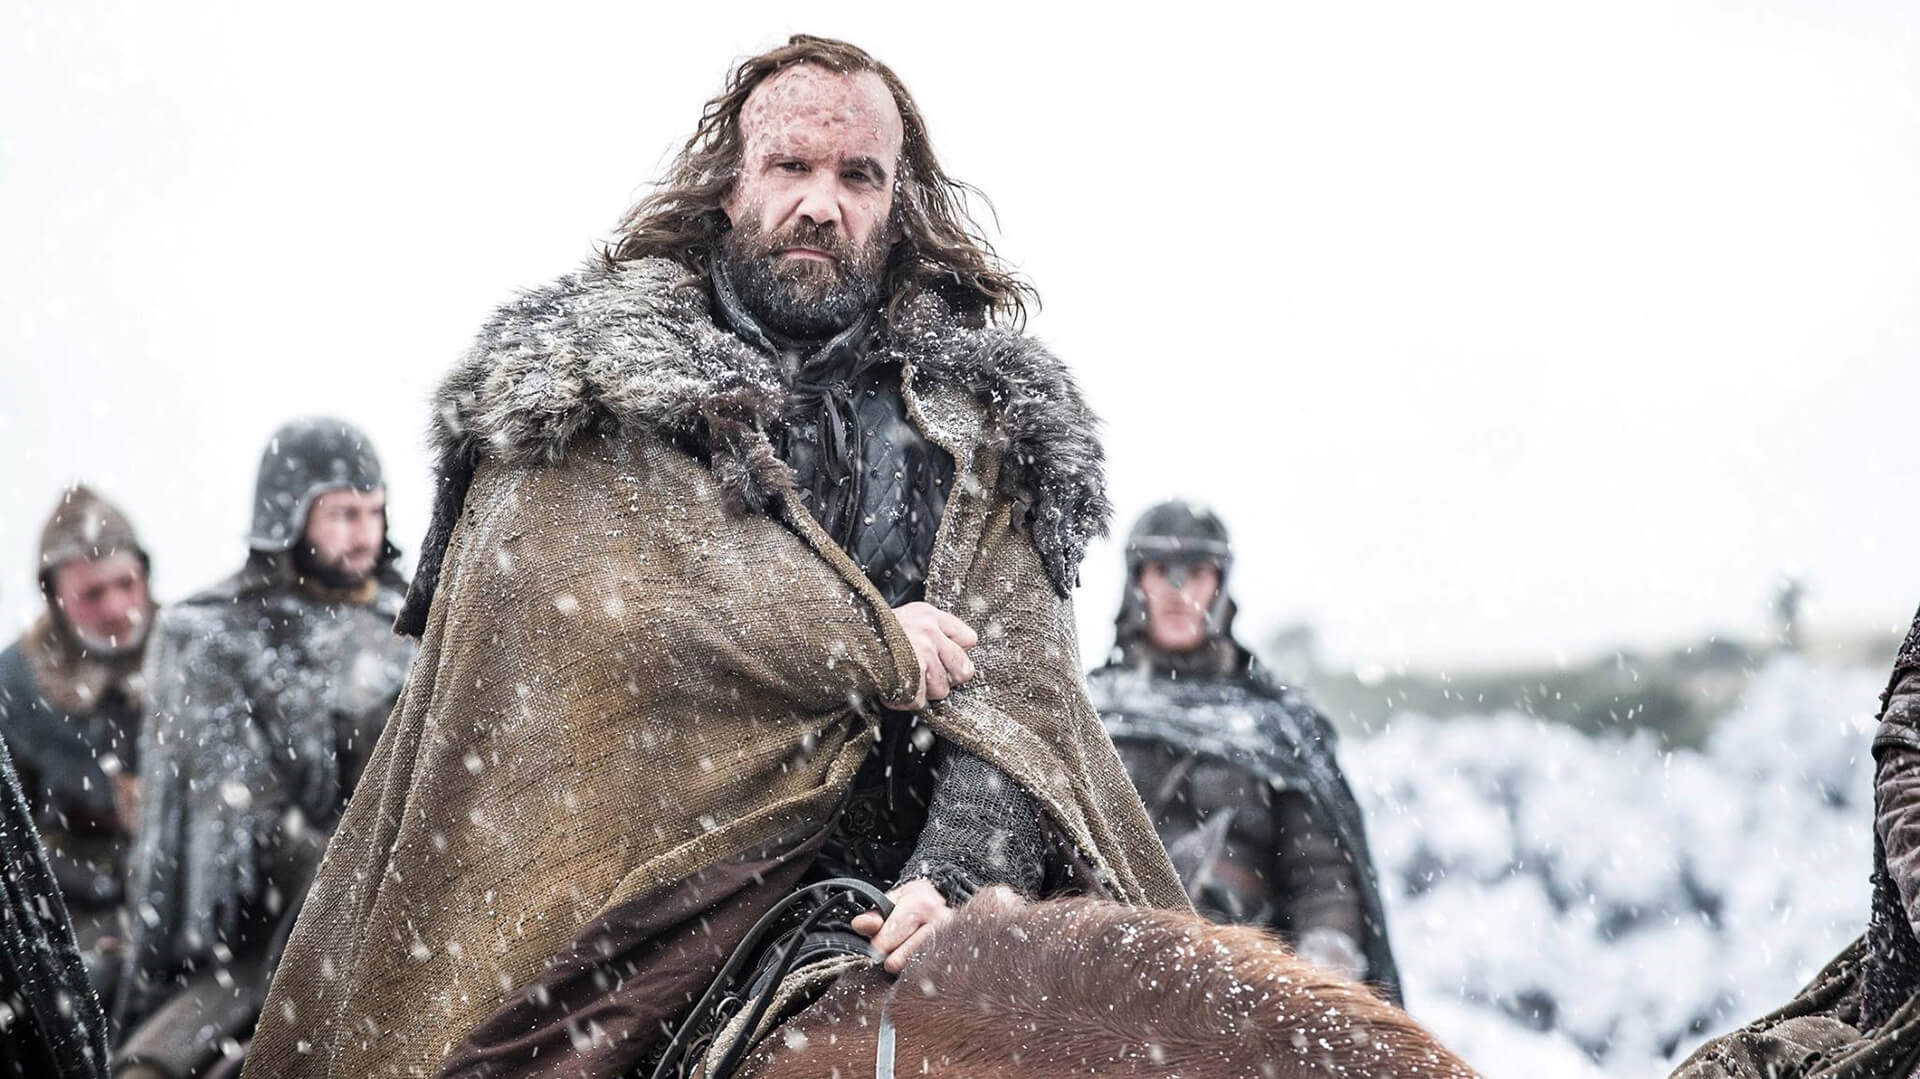 What do we know about potential Game of Thrones spin-offs?